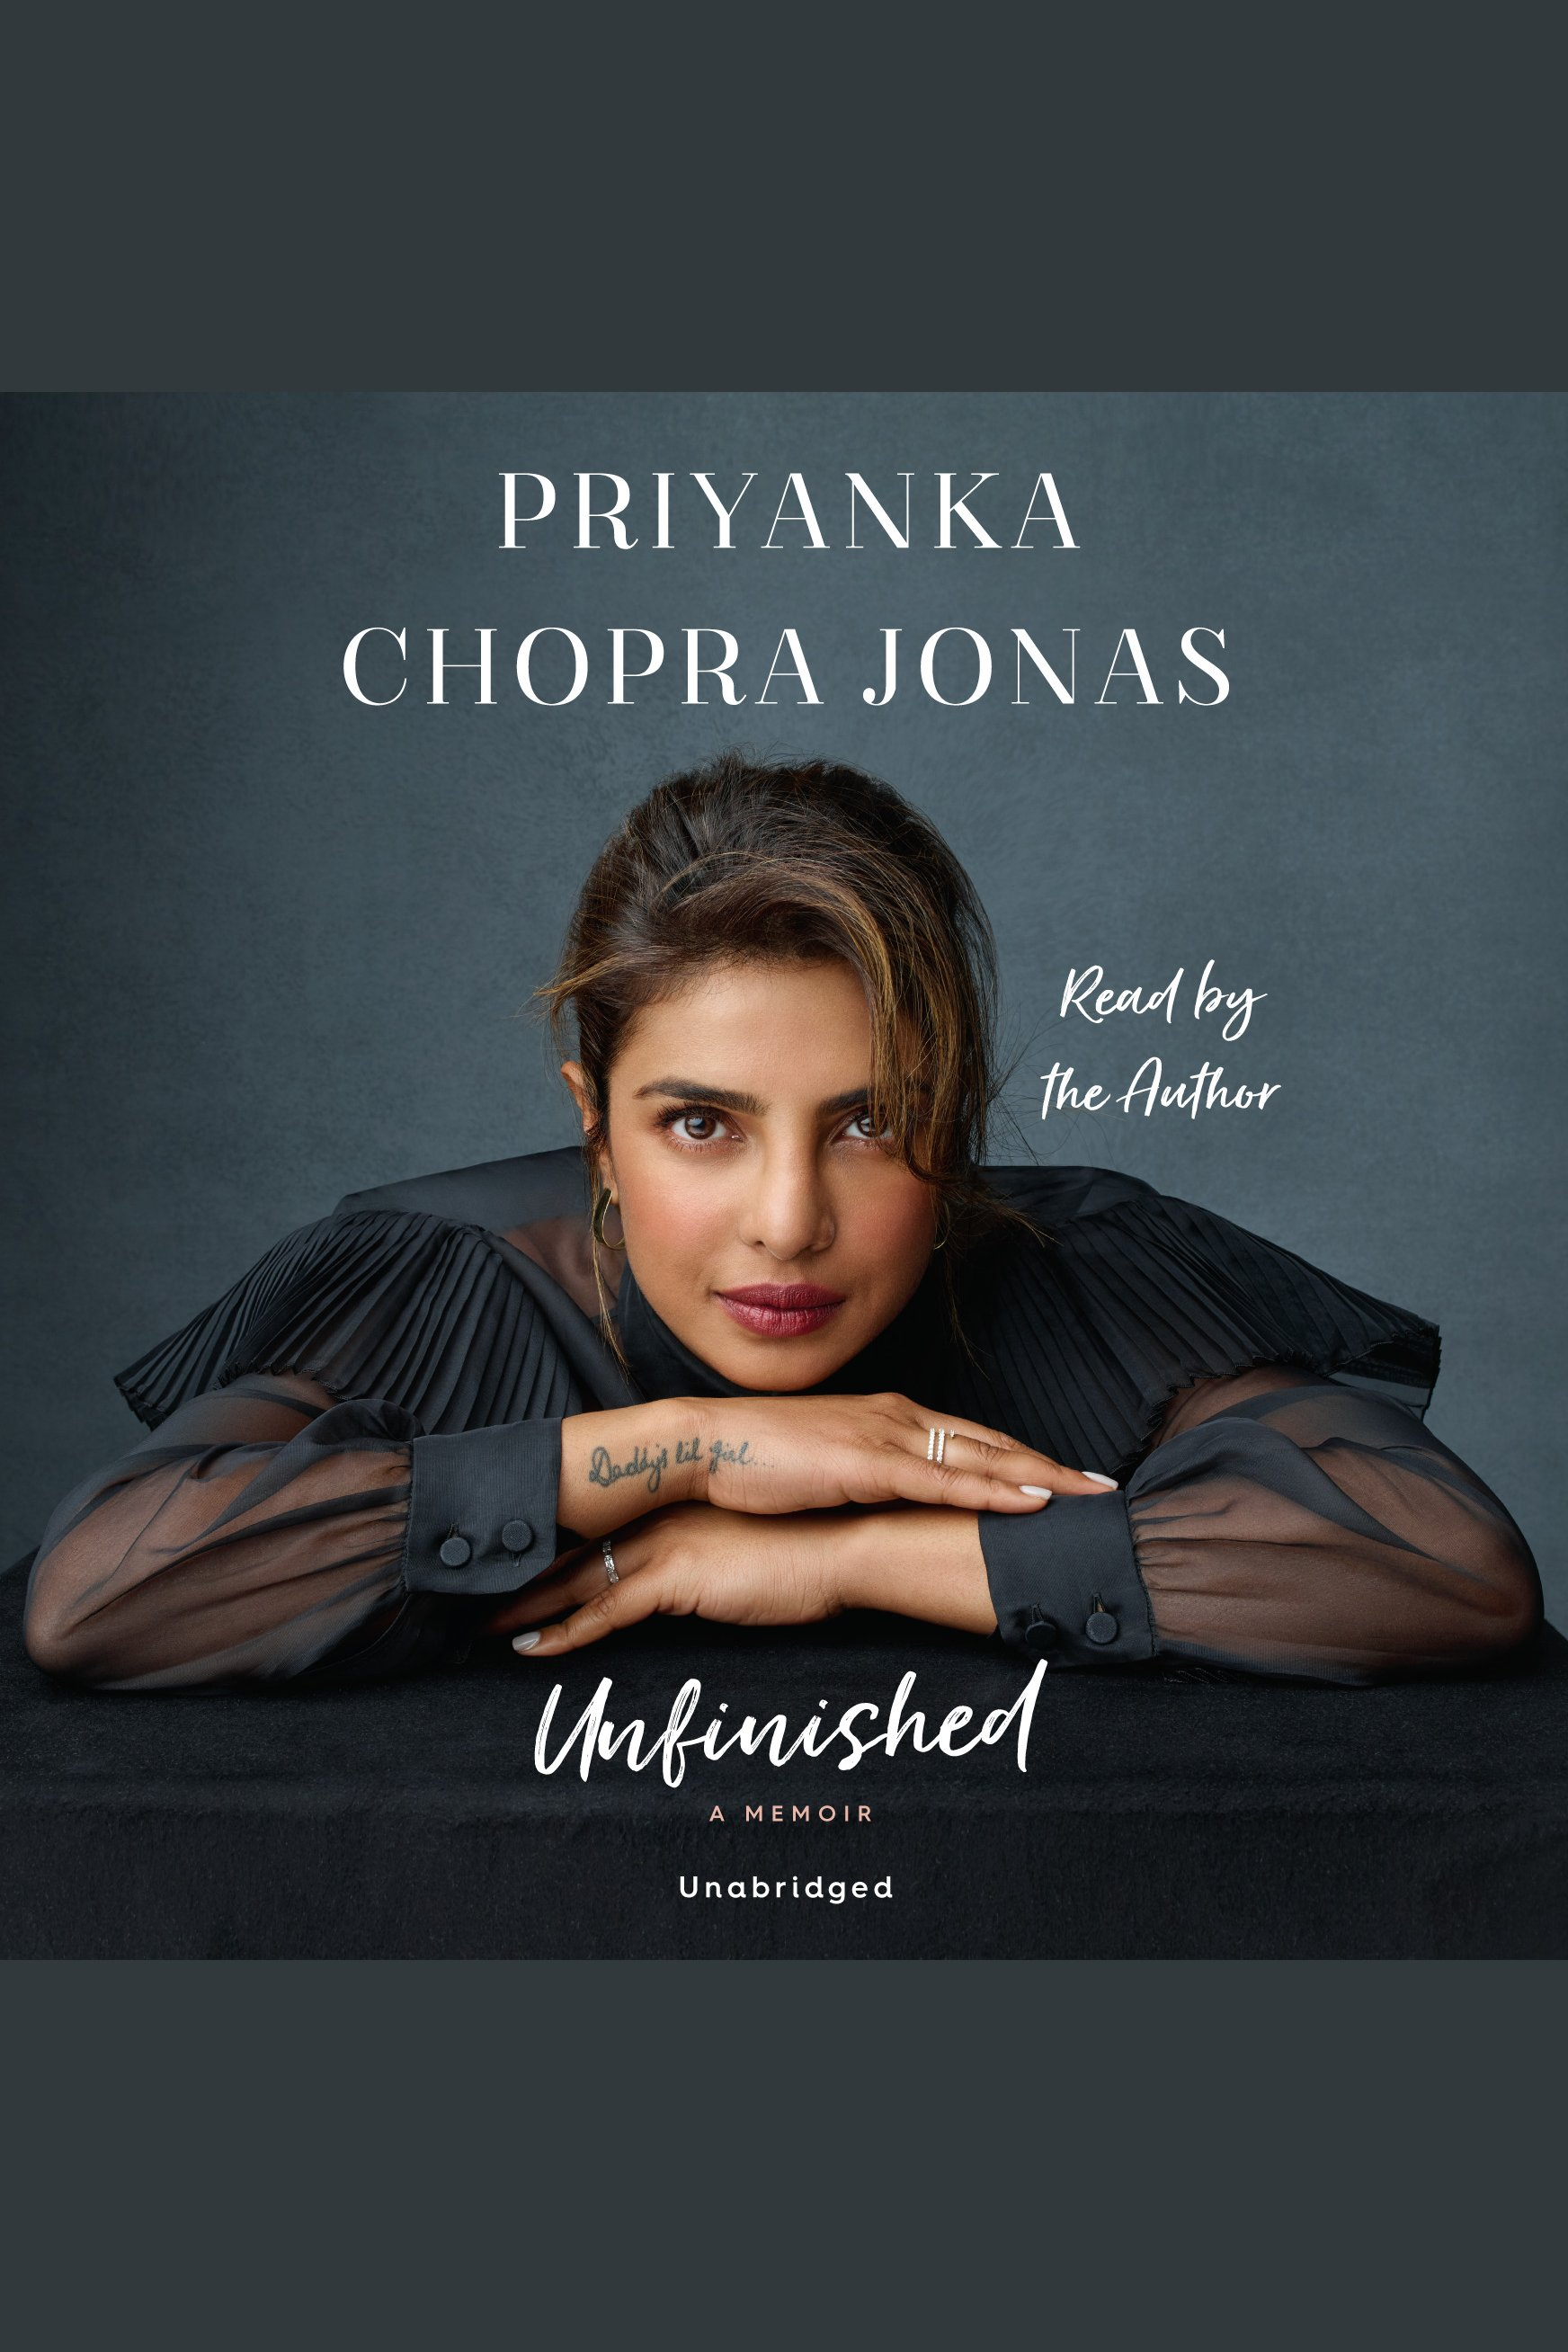 Cover Image of Unfinished